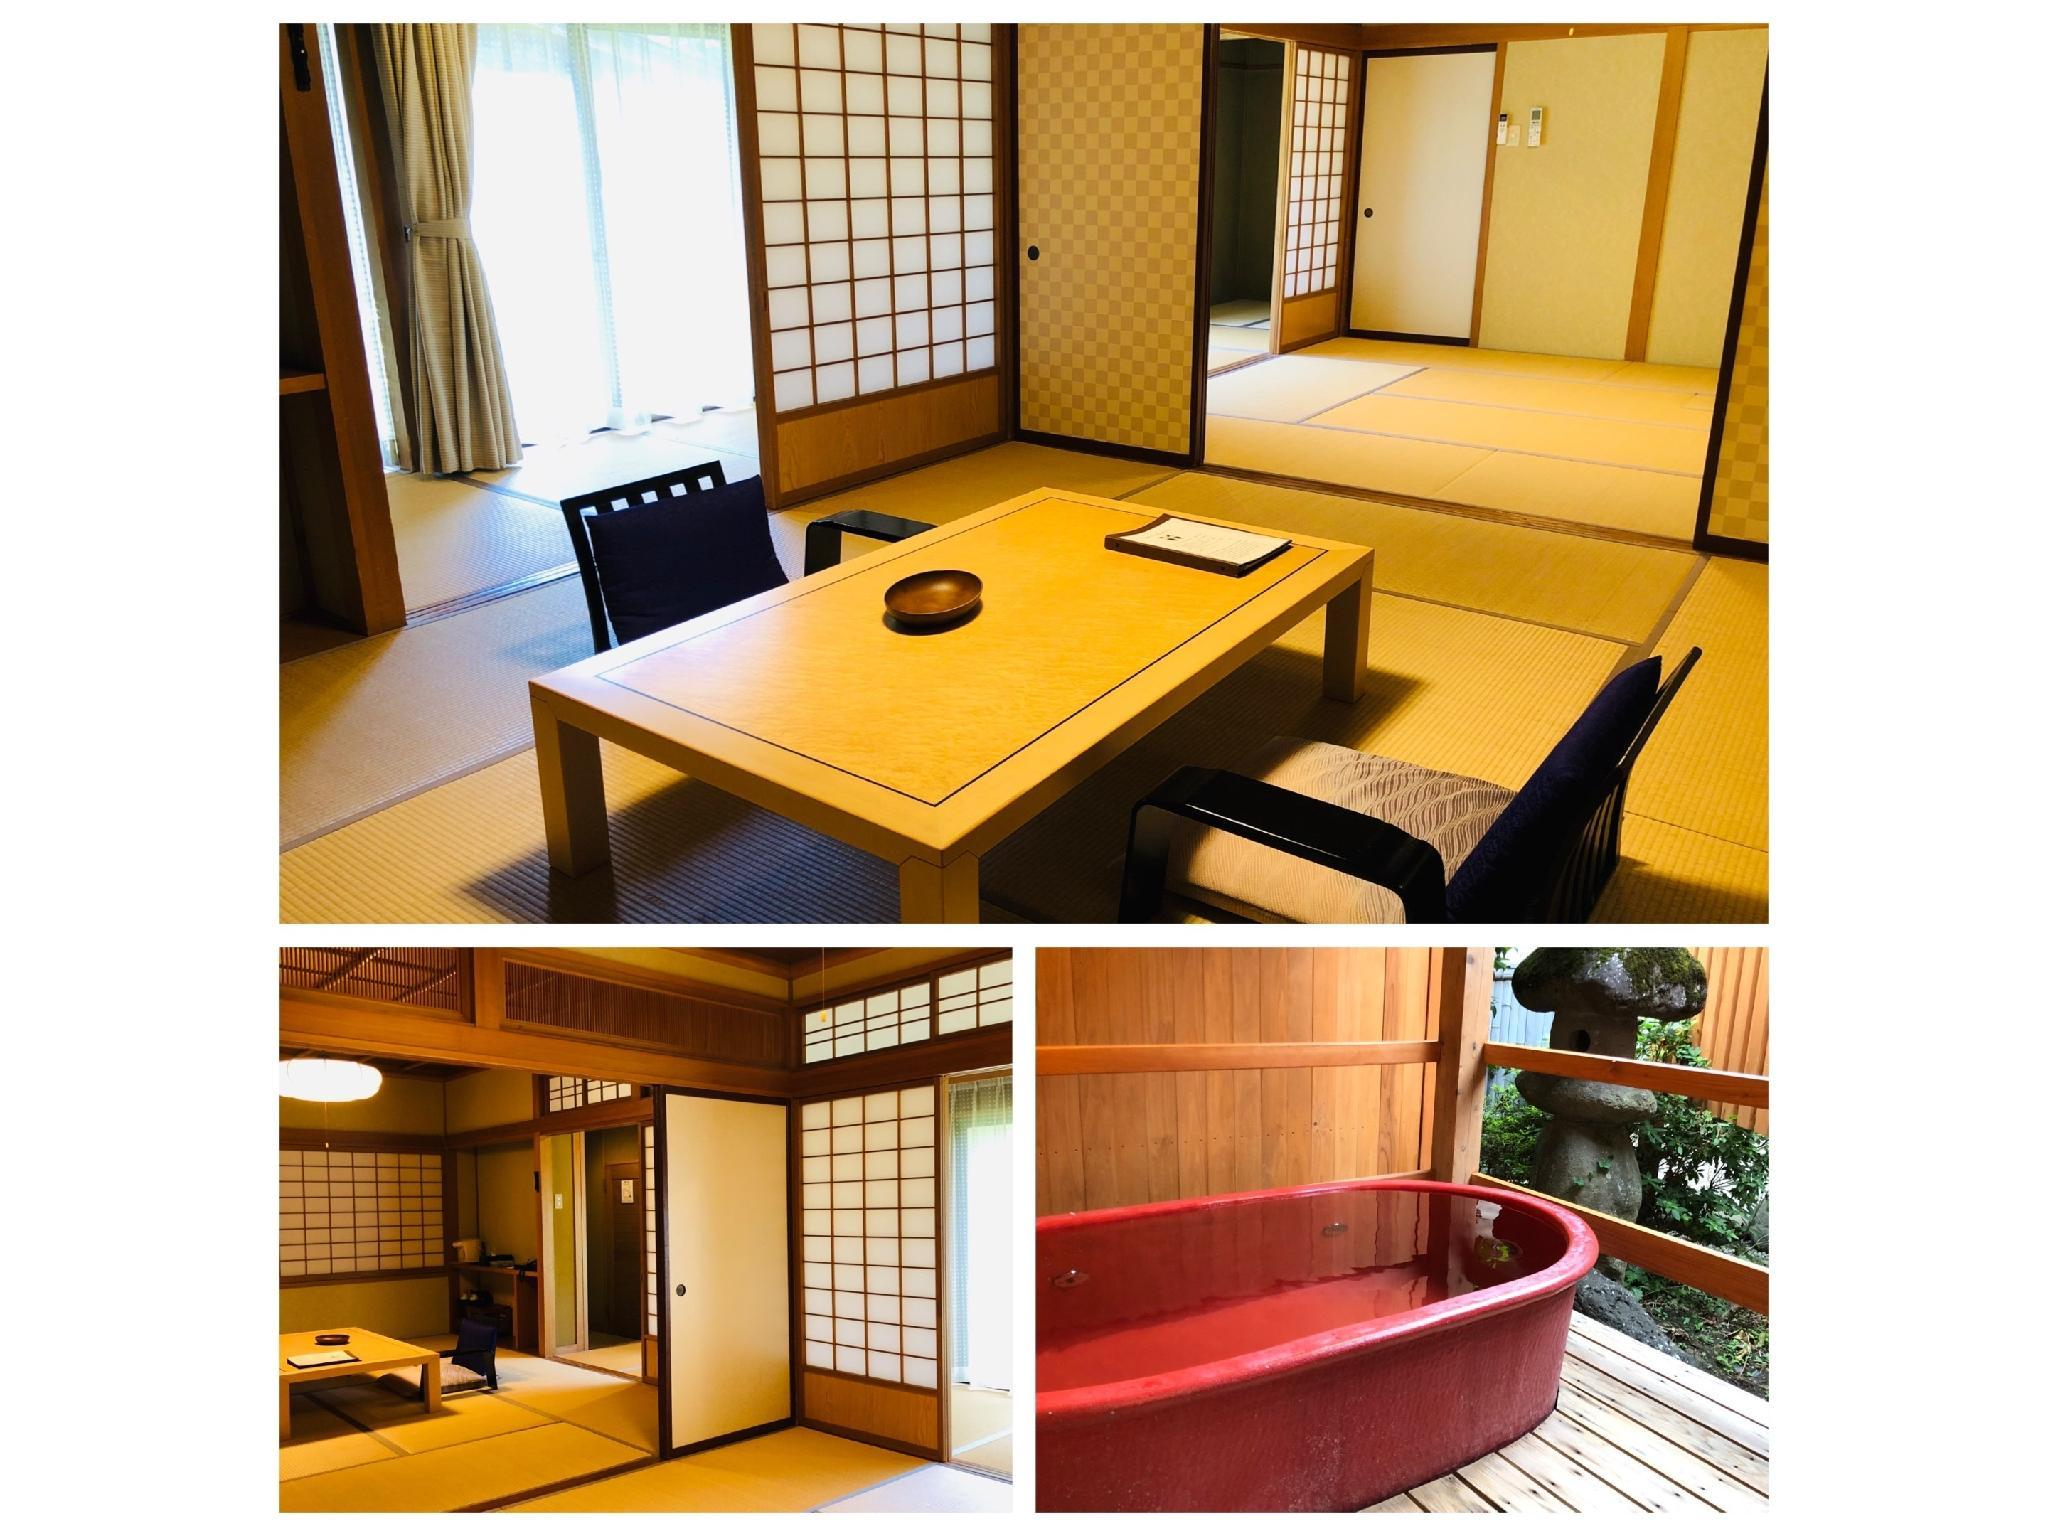 日式房-带露天温泉浴池 (Japanese Room with Open-Air Hot Spring Bath)